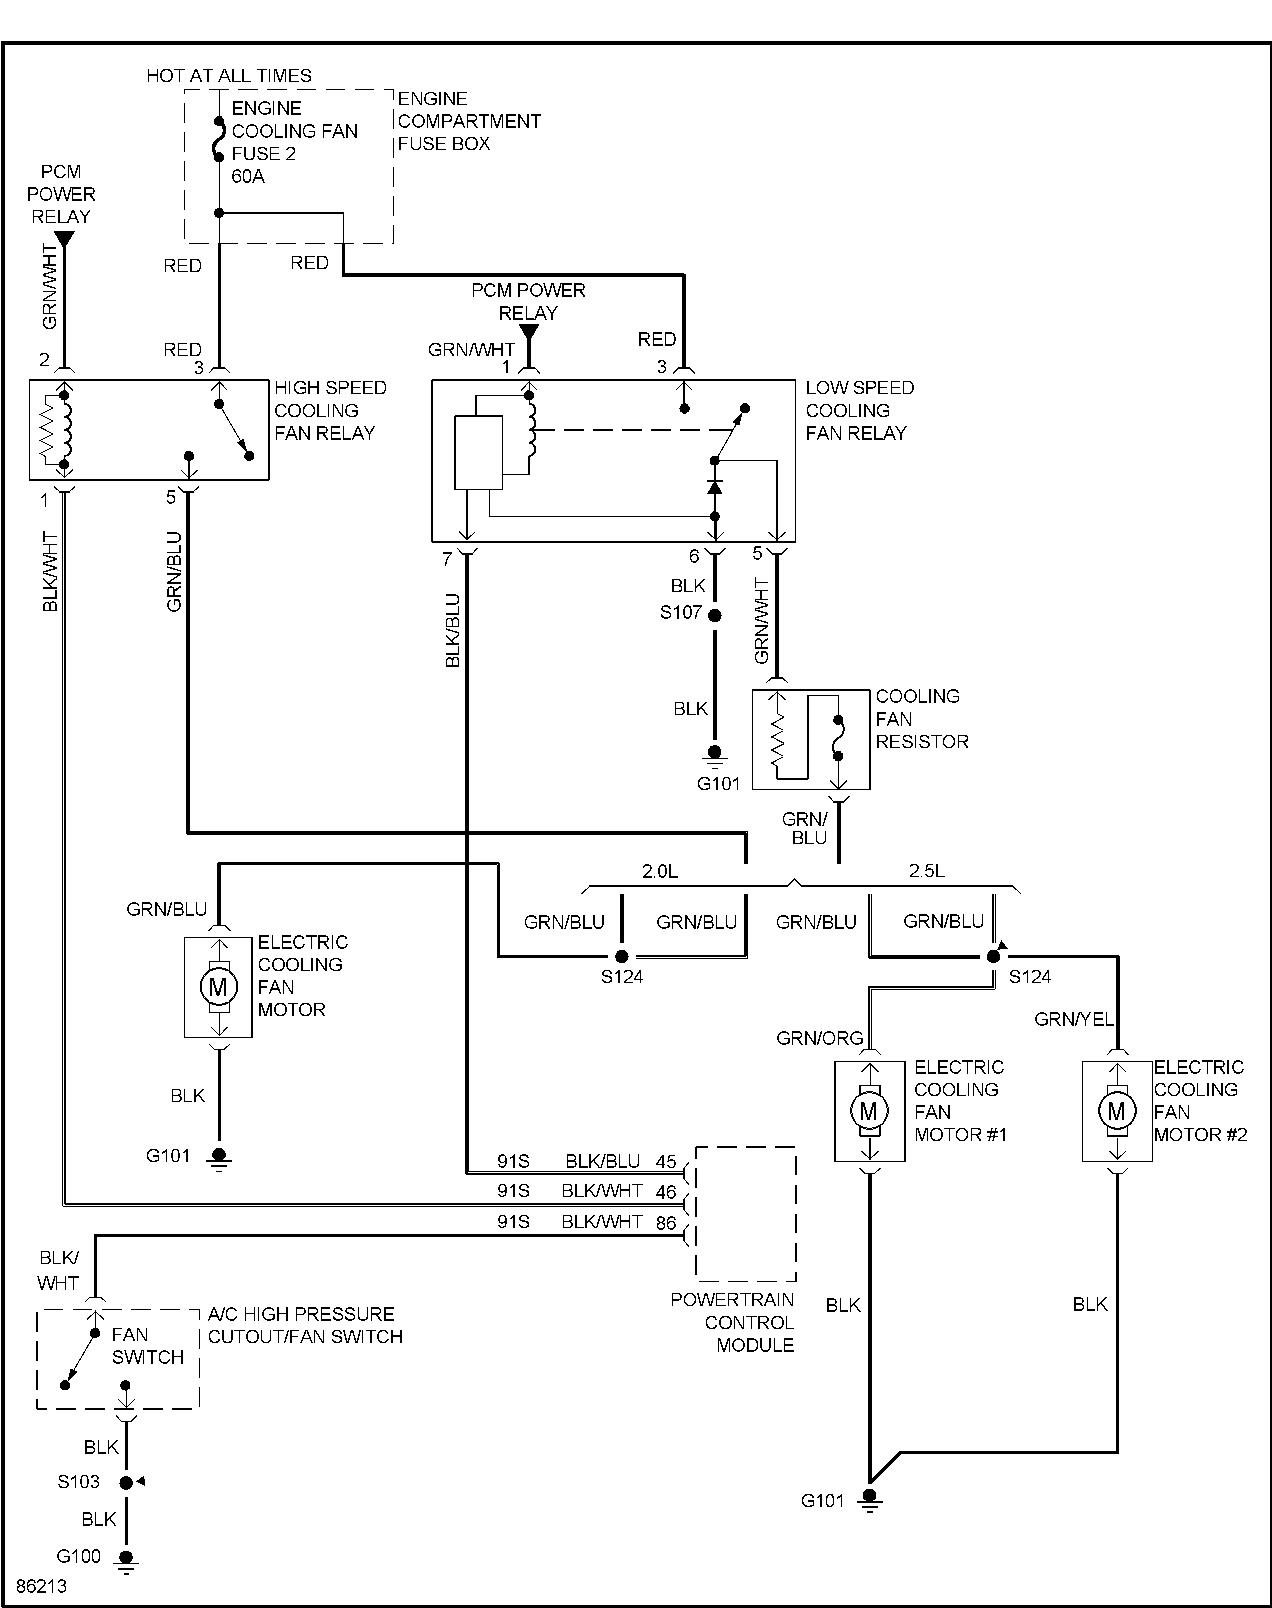 Diagram Wiring Diagram For Cooling Fan Circuit On A 98 Sls